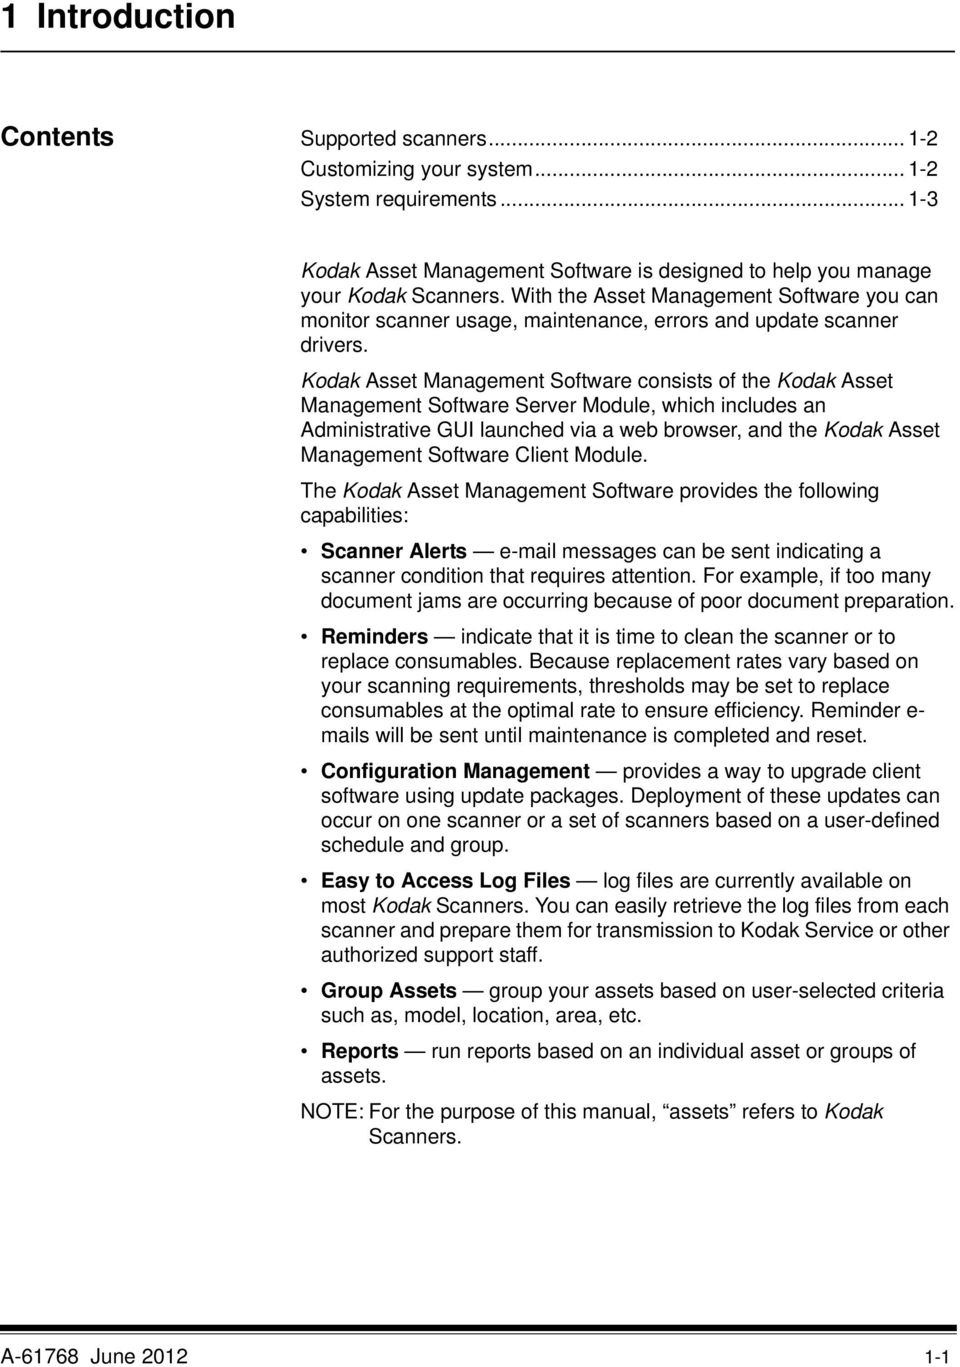 Kodak Asset Management Software consists of the Kodak Asset Management Software Server Module, which includes an Administrative GUI launched via a web browser, and the Kodak Asset Management Software